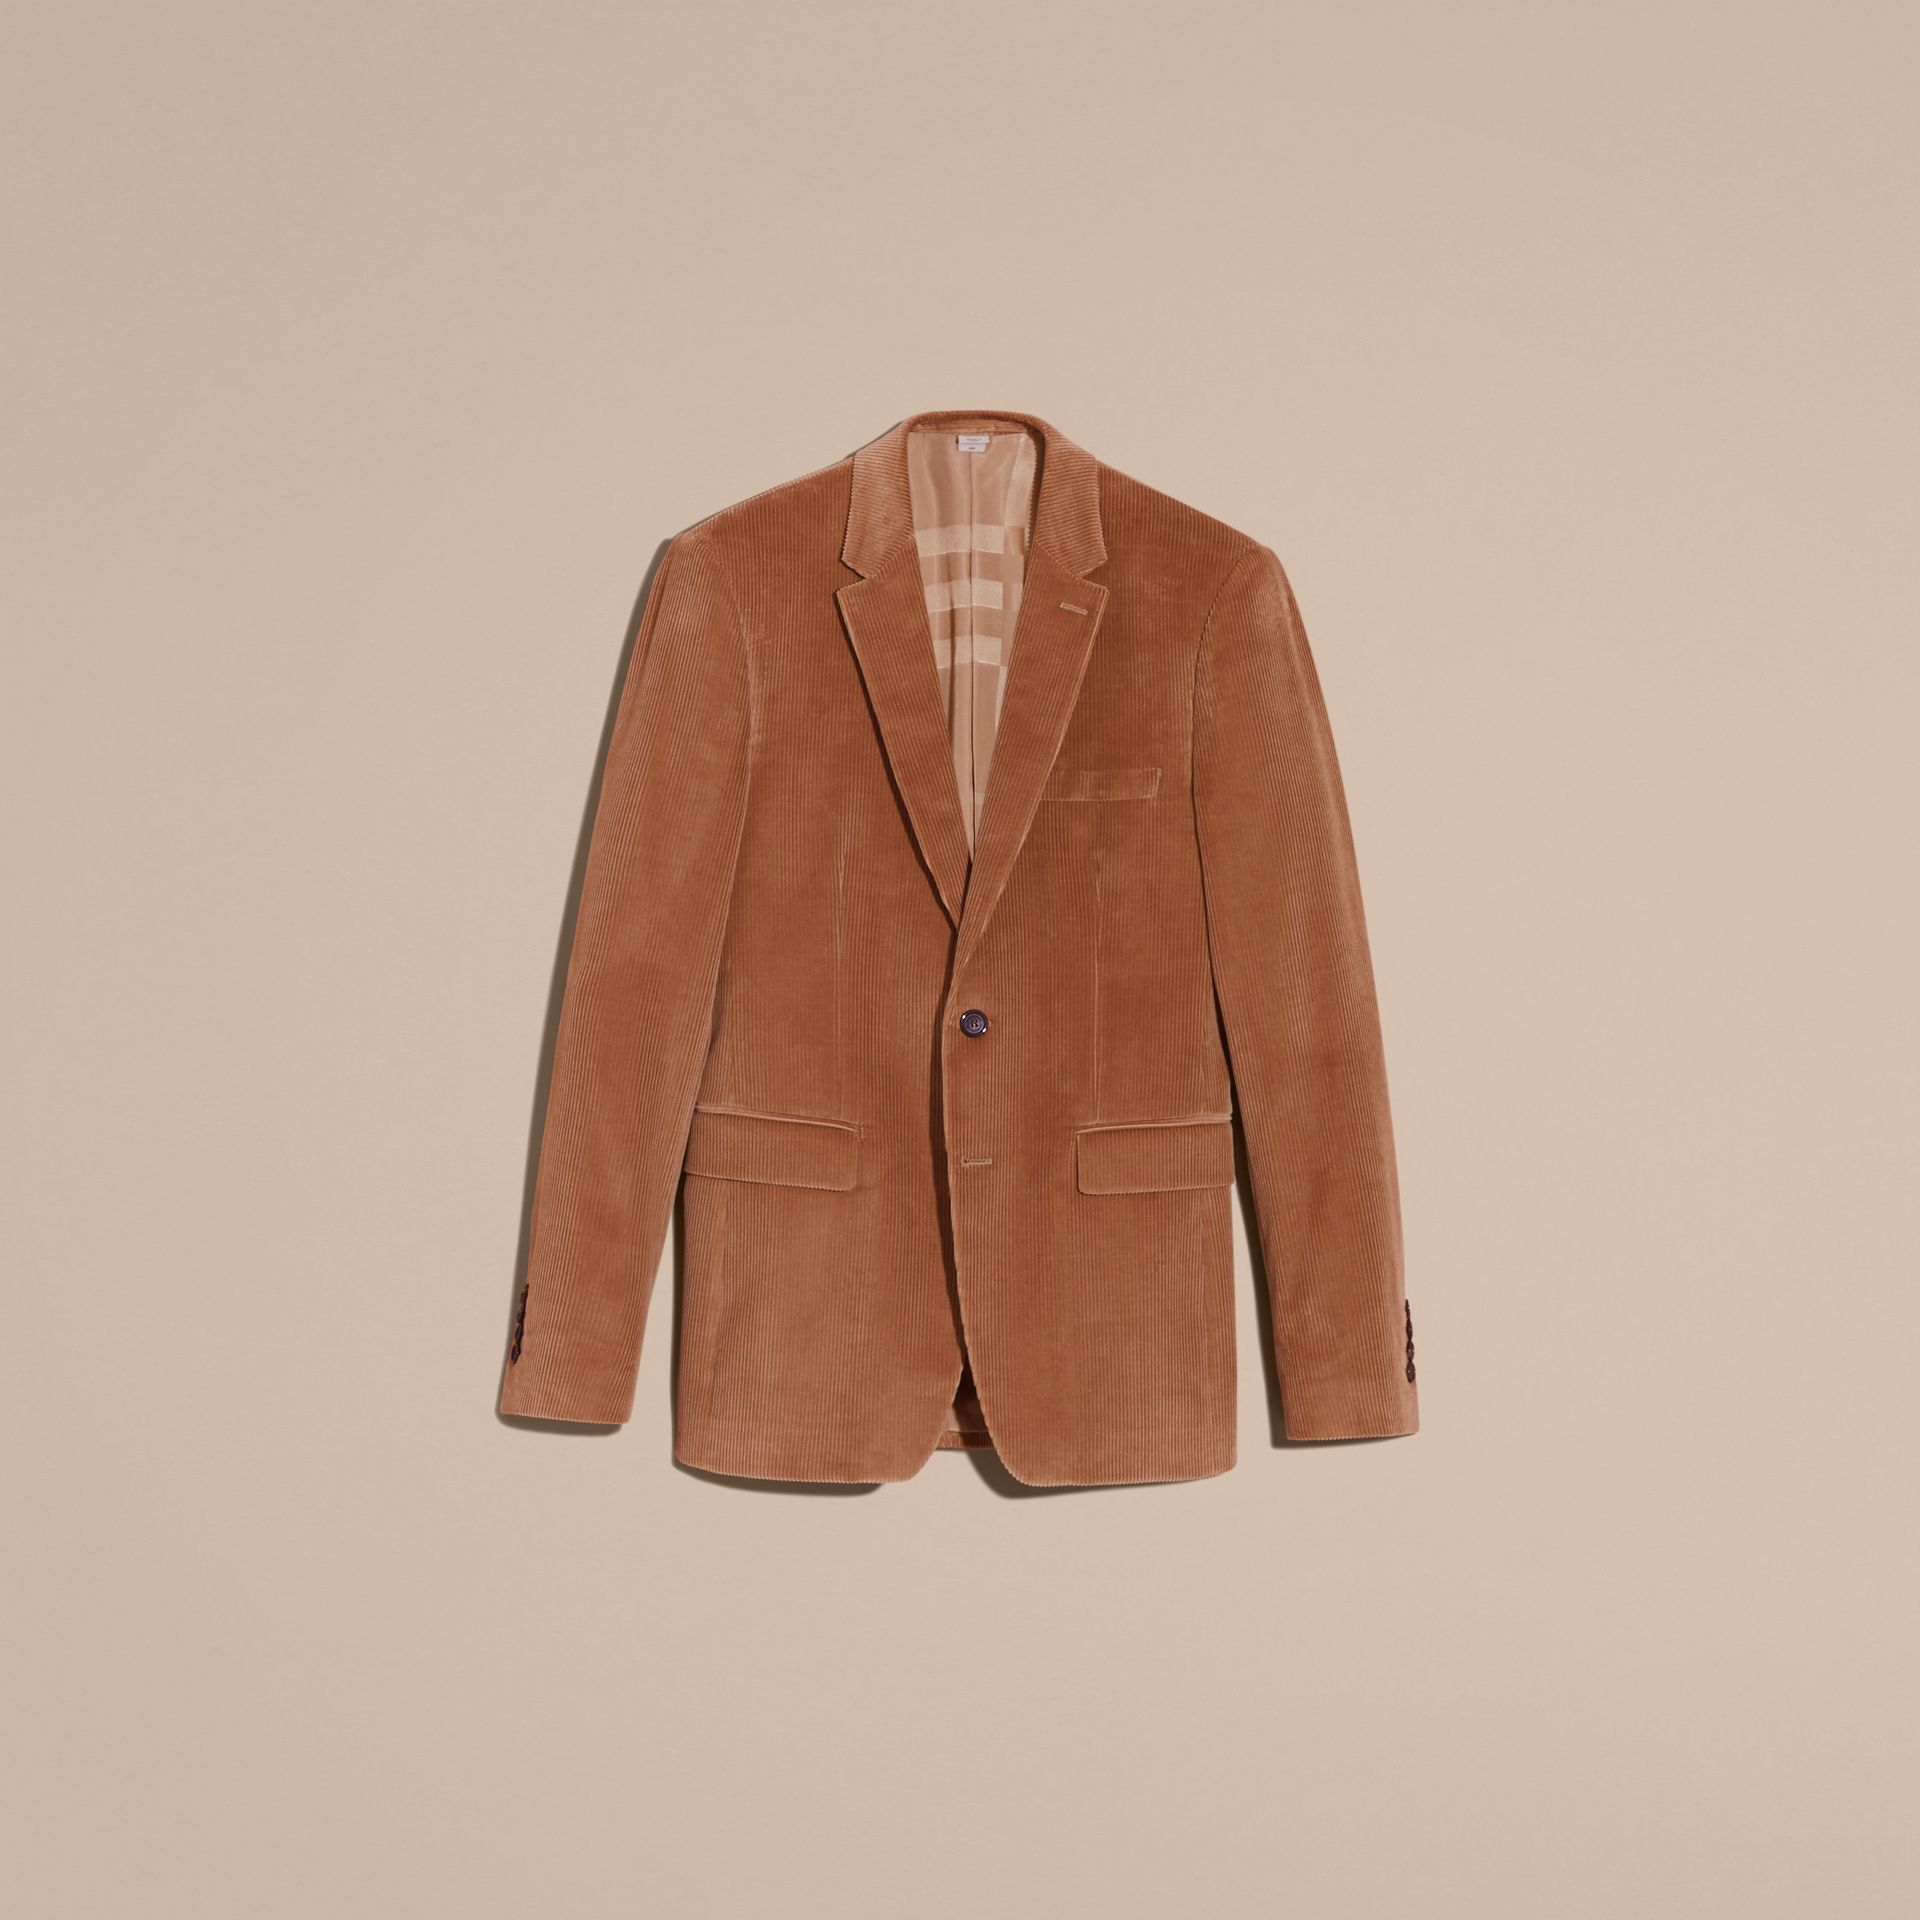 Camel Slim Fit Cotton Corduroy Jacket Camel - gallery image 4